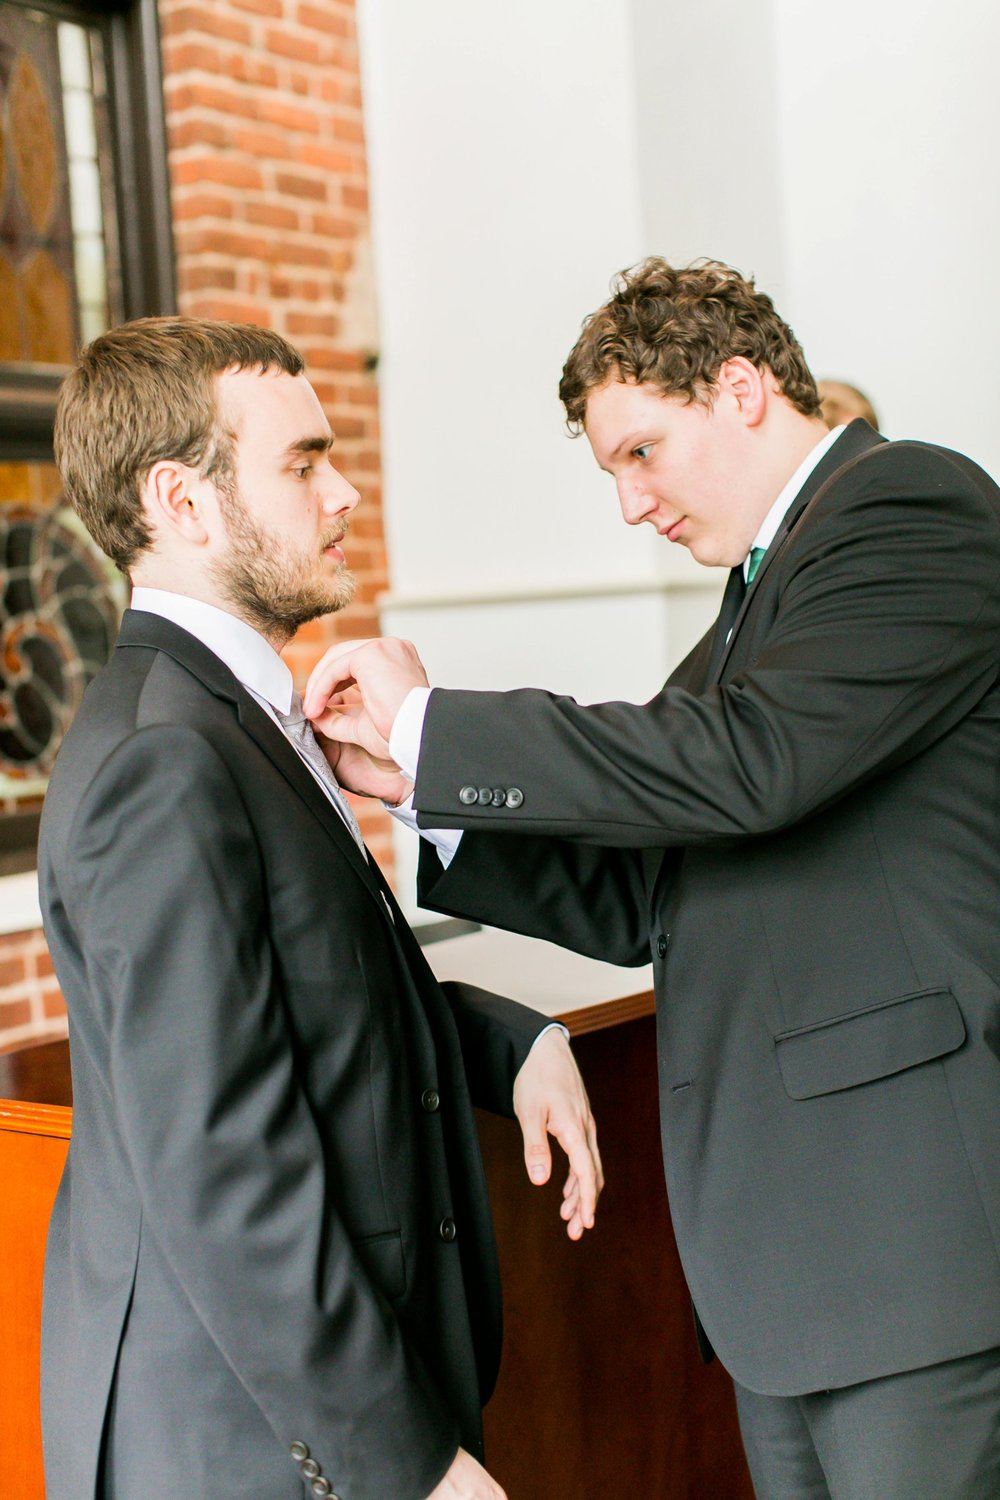 virginiaweddingphotographer_0289.jpg